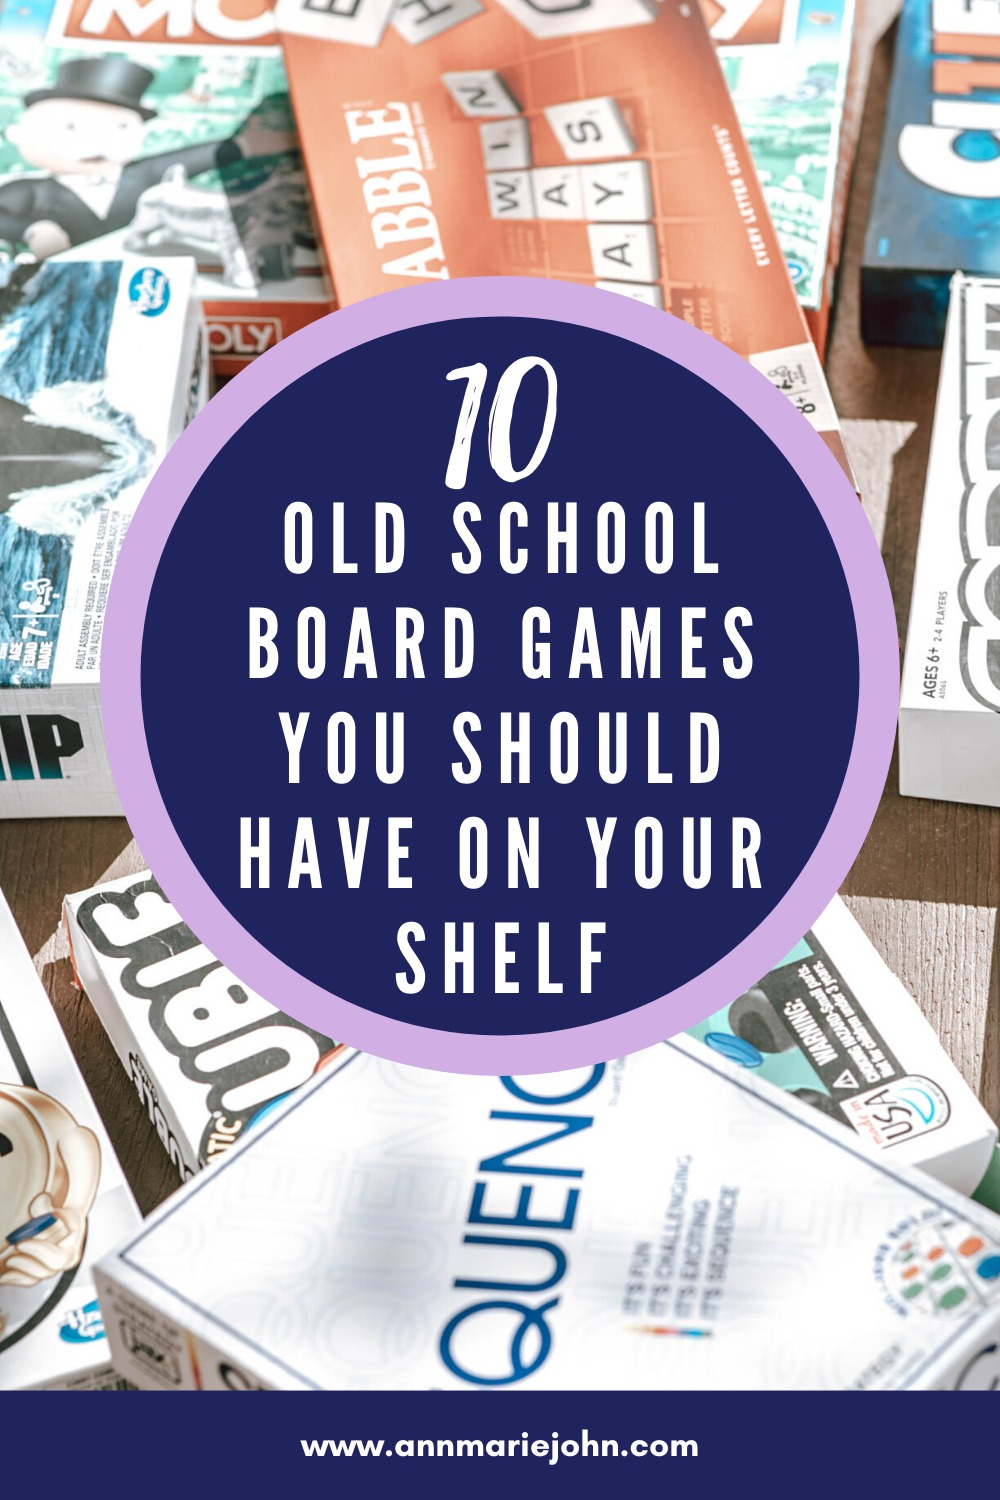 Old School Board Games Pinterest Image